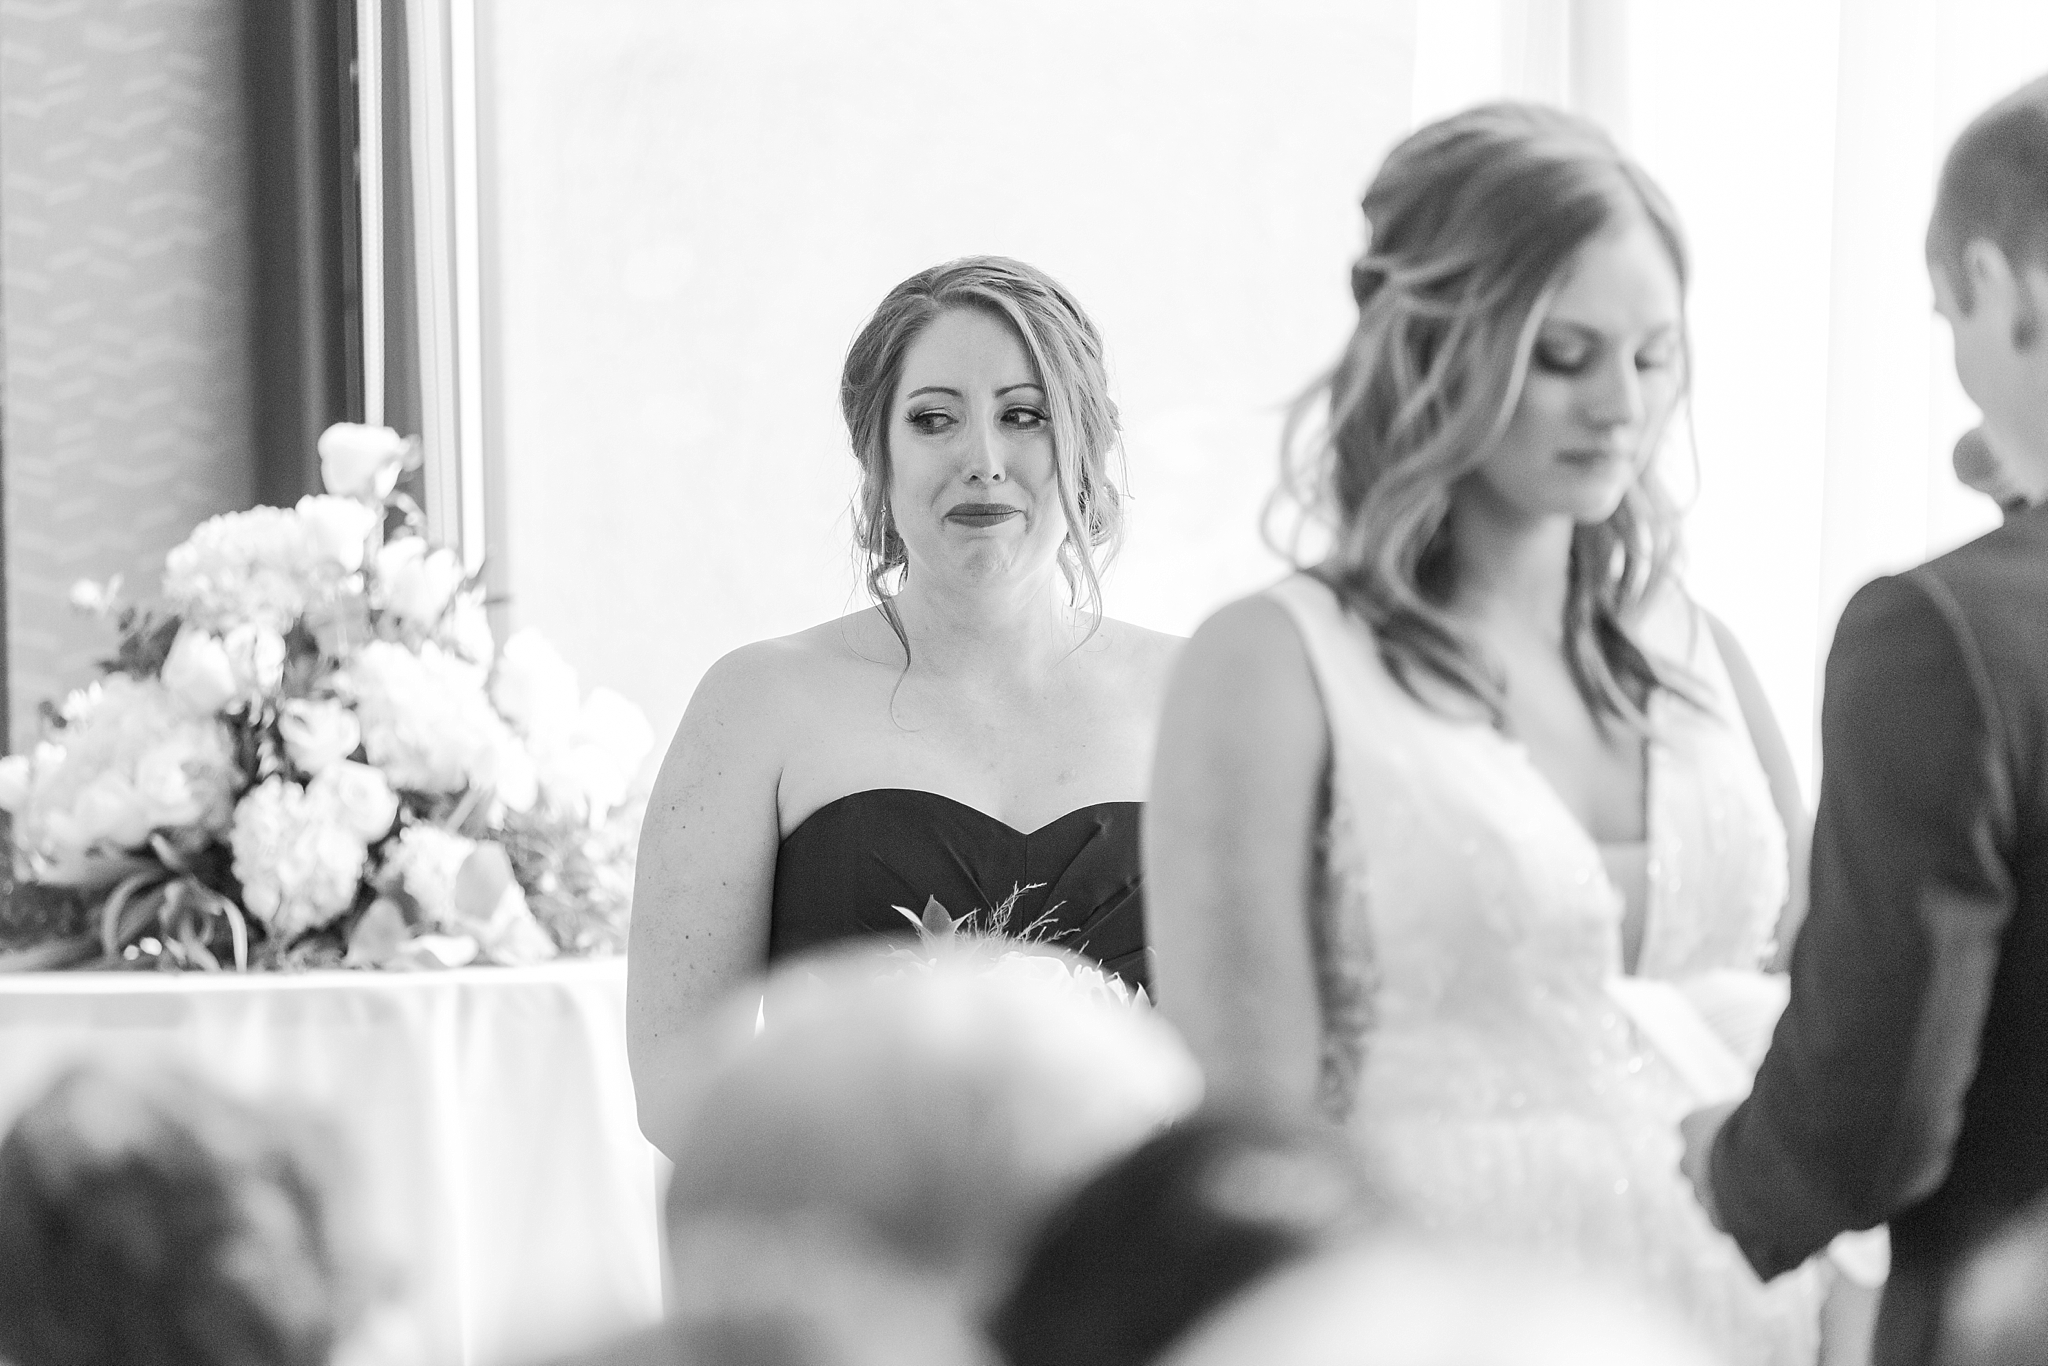 joyful-candid-laid-back-wedding-photos-in-ann-arbor-michigan-and-at-the-eagle-crest-golf-resort-by-courtney-carolyn-photography_0079.jpg